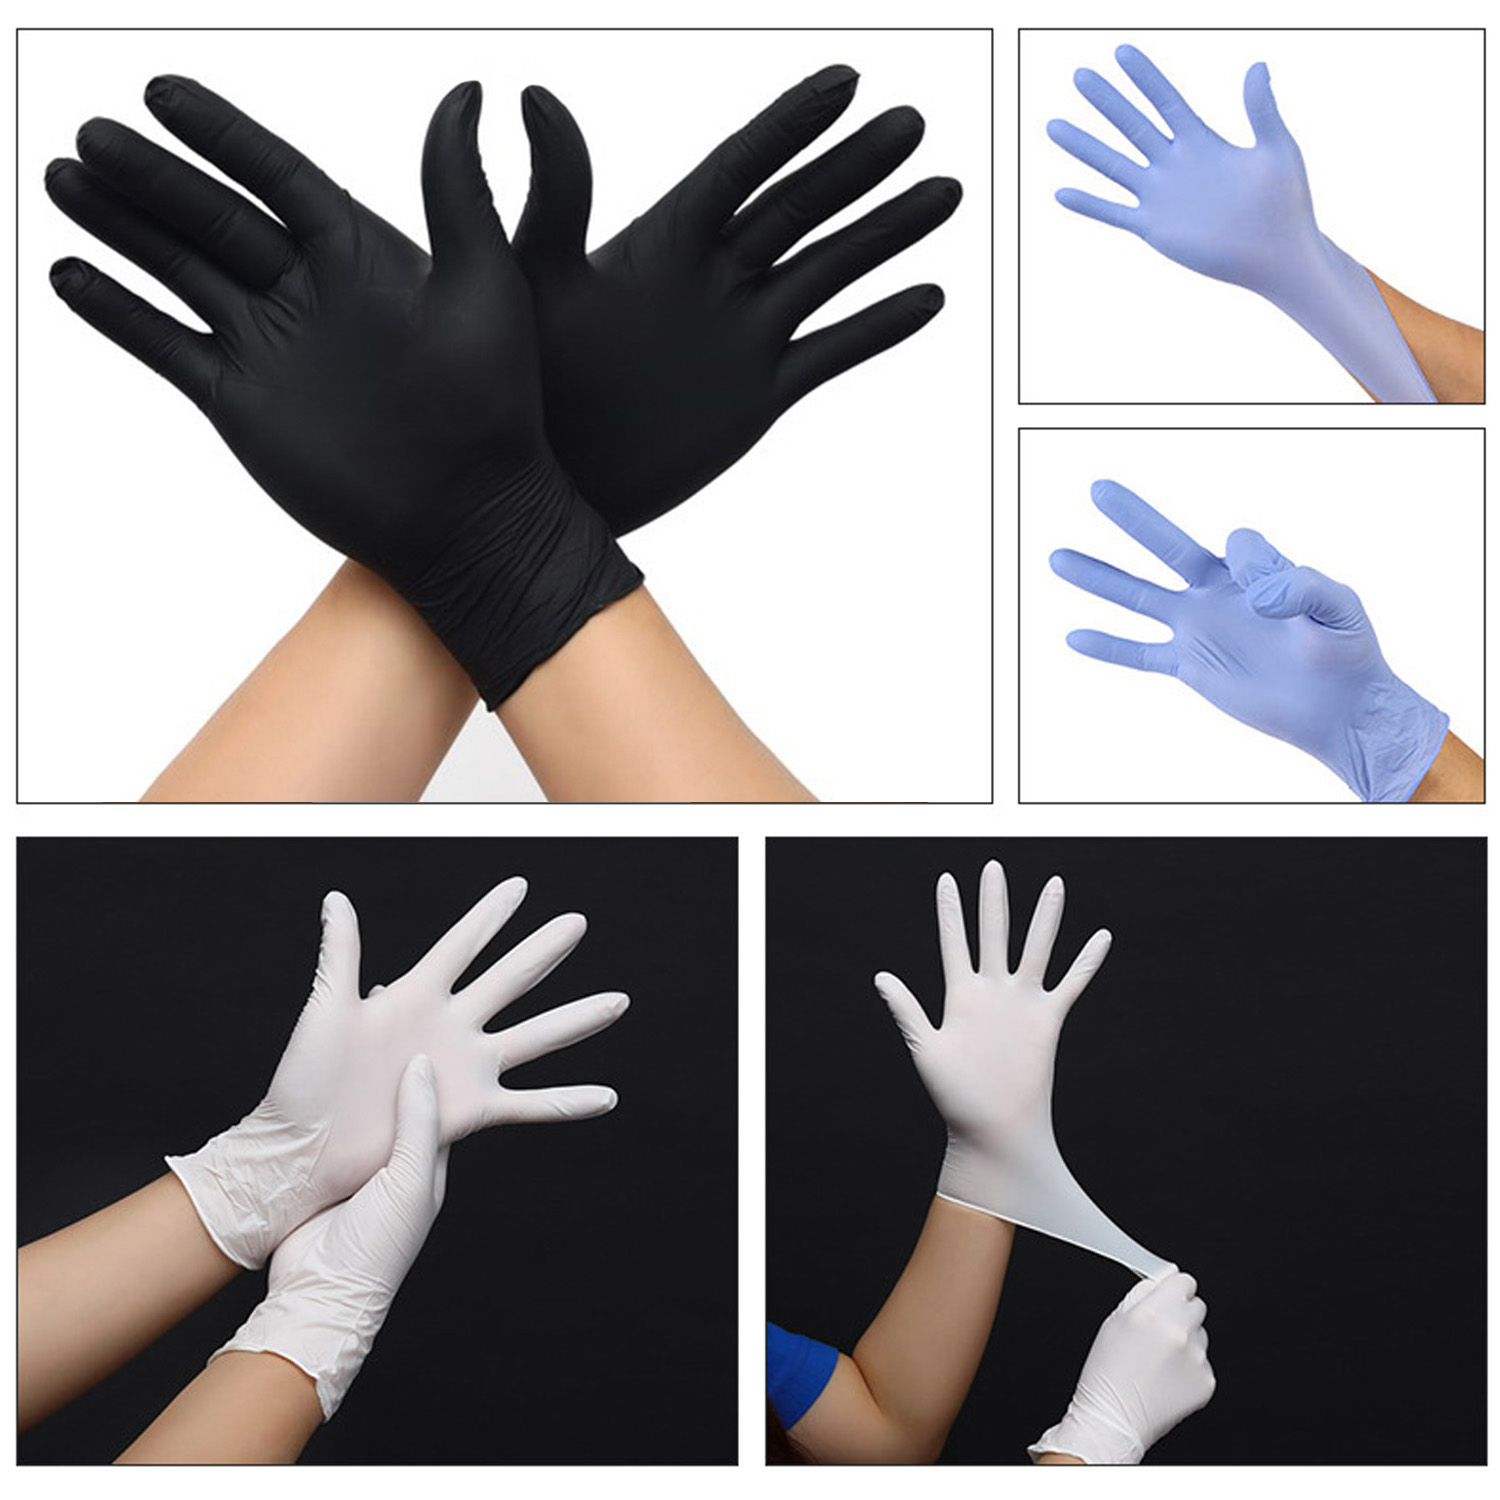 Satkago 100pcs Disposable Gloves Nitrile Rubber Examination Gloves For Home Kitchen Food Medical Cosmetic Supplies